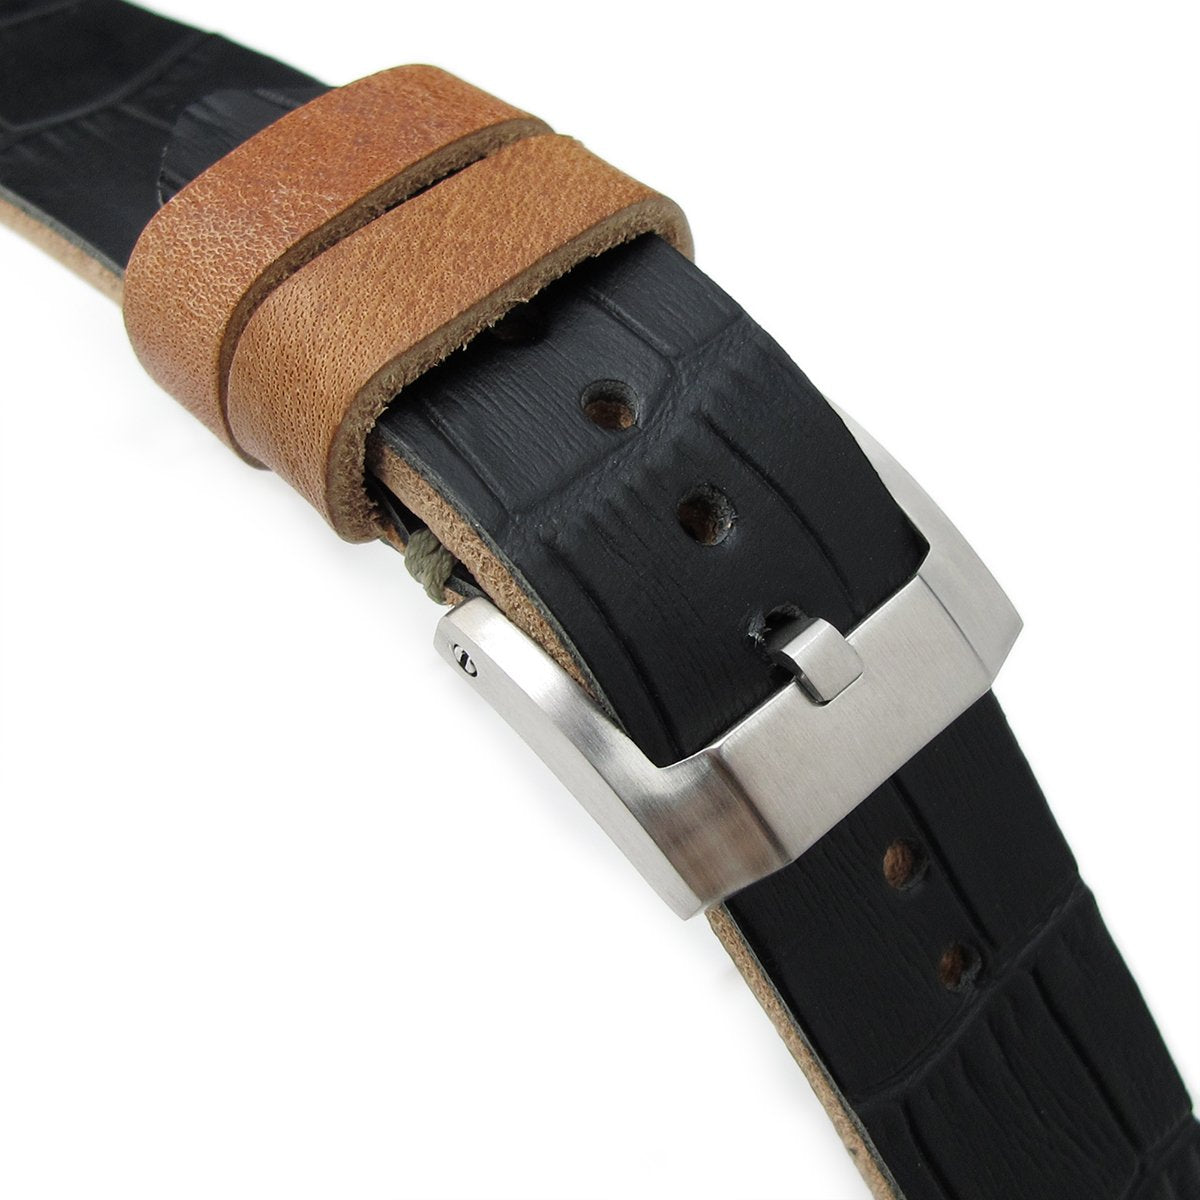 20mm MiLTAT Antipode Watch Strap Matte Black CrocoCalf in Grey Hand Stitches Strapcode Watch Bands